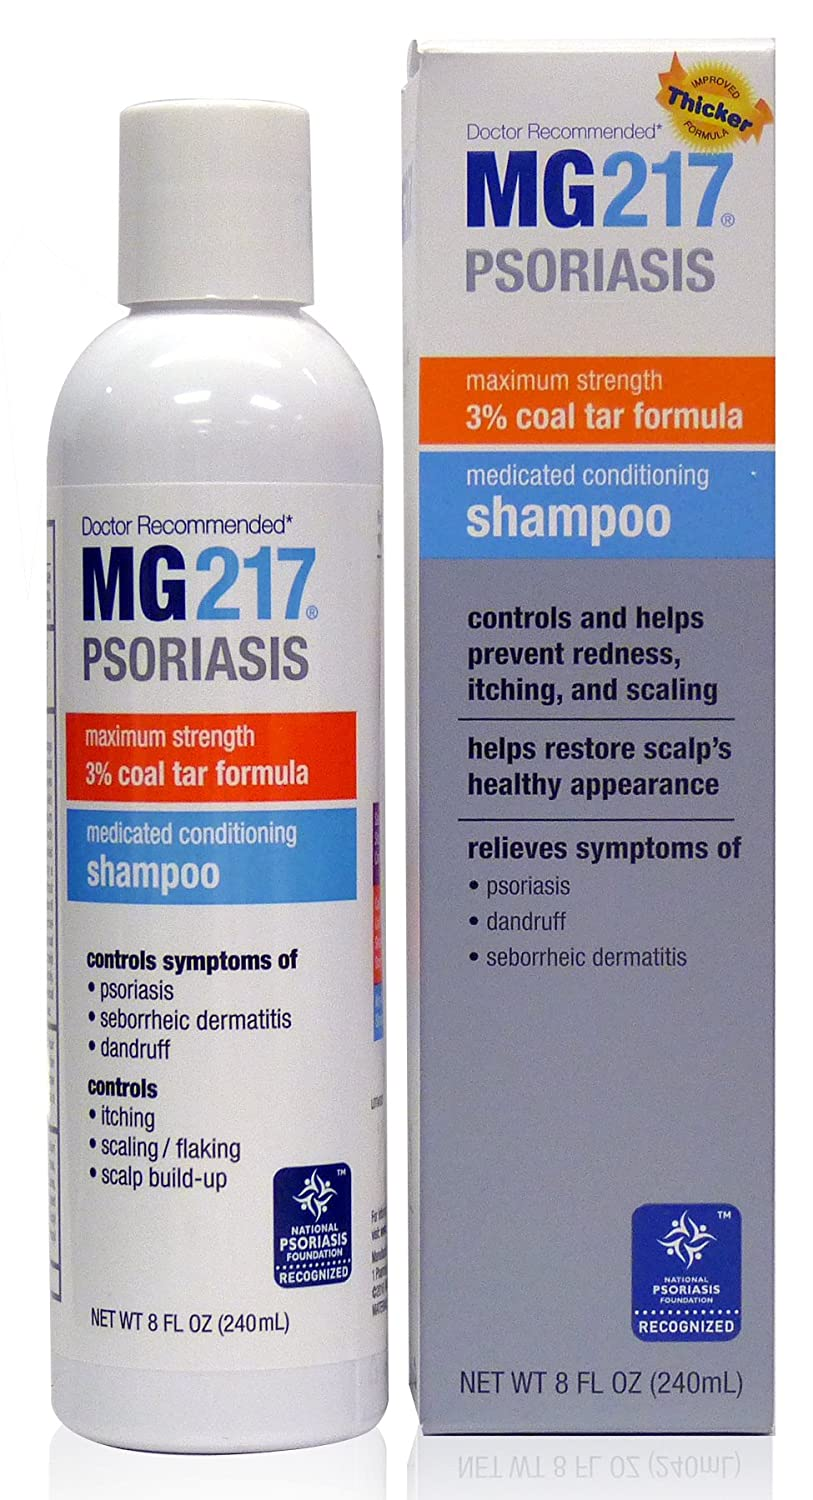 845a642bb468 Amazon.com  MG217 Psoriasis Medicated Conditioning 3% Coal Tar Formula  Shampoo